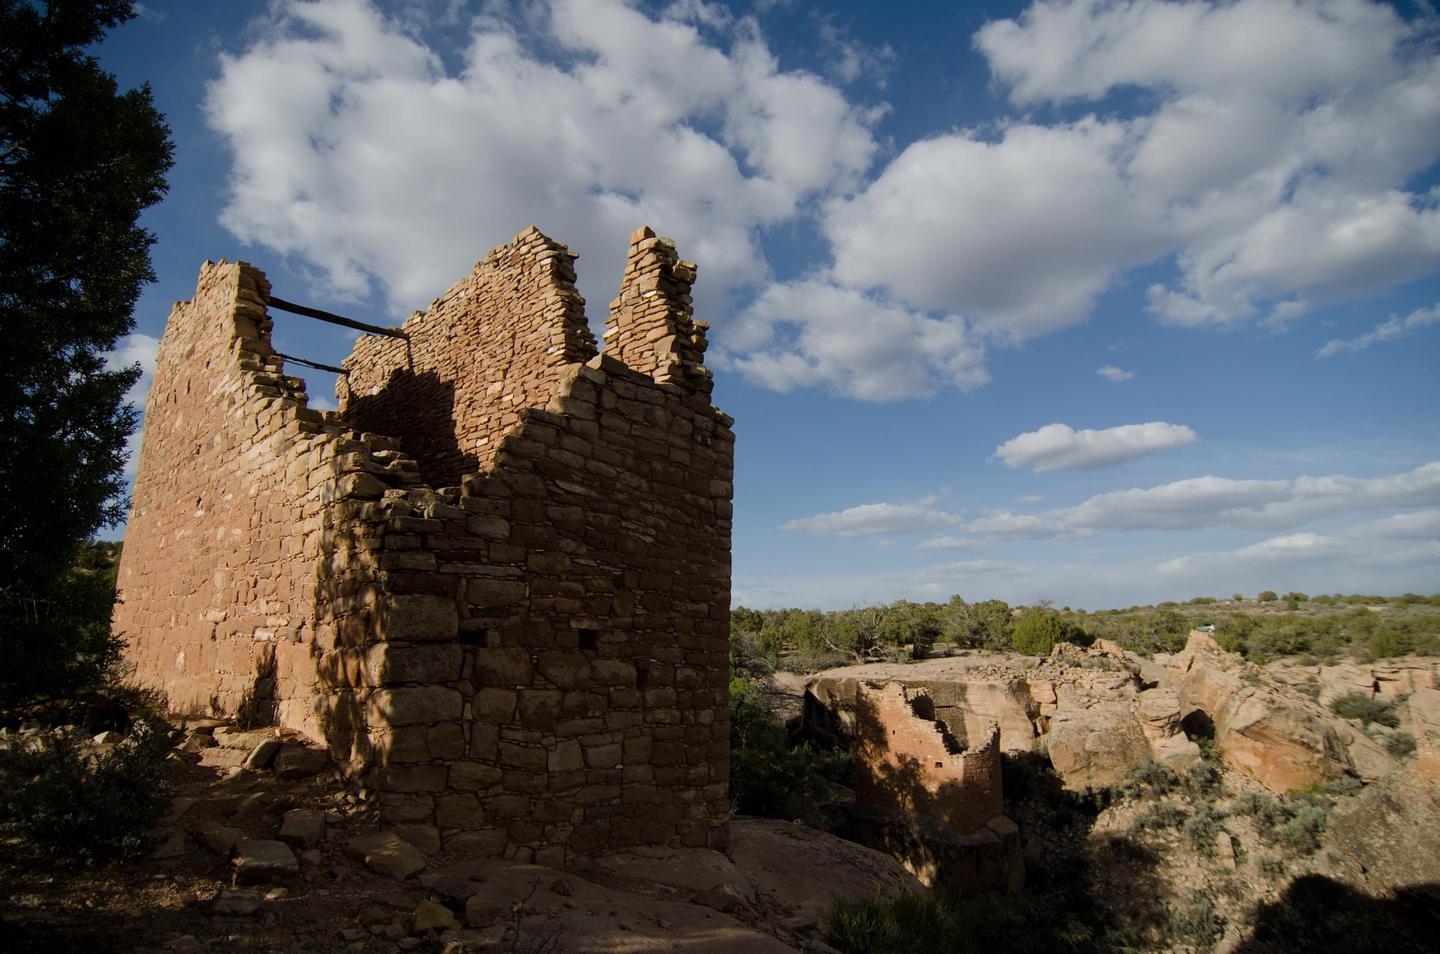 Holly GroupThe Holly Group is one of Hovenweep's outlying sites, but worth the drive or hike.